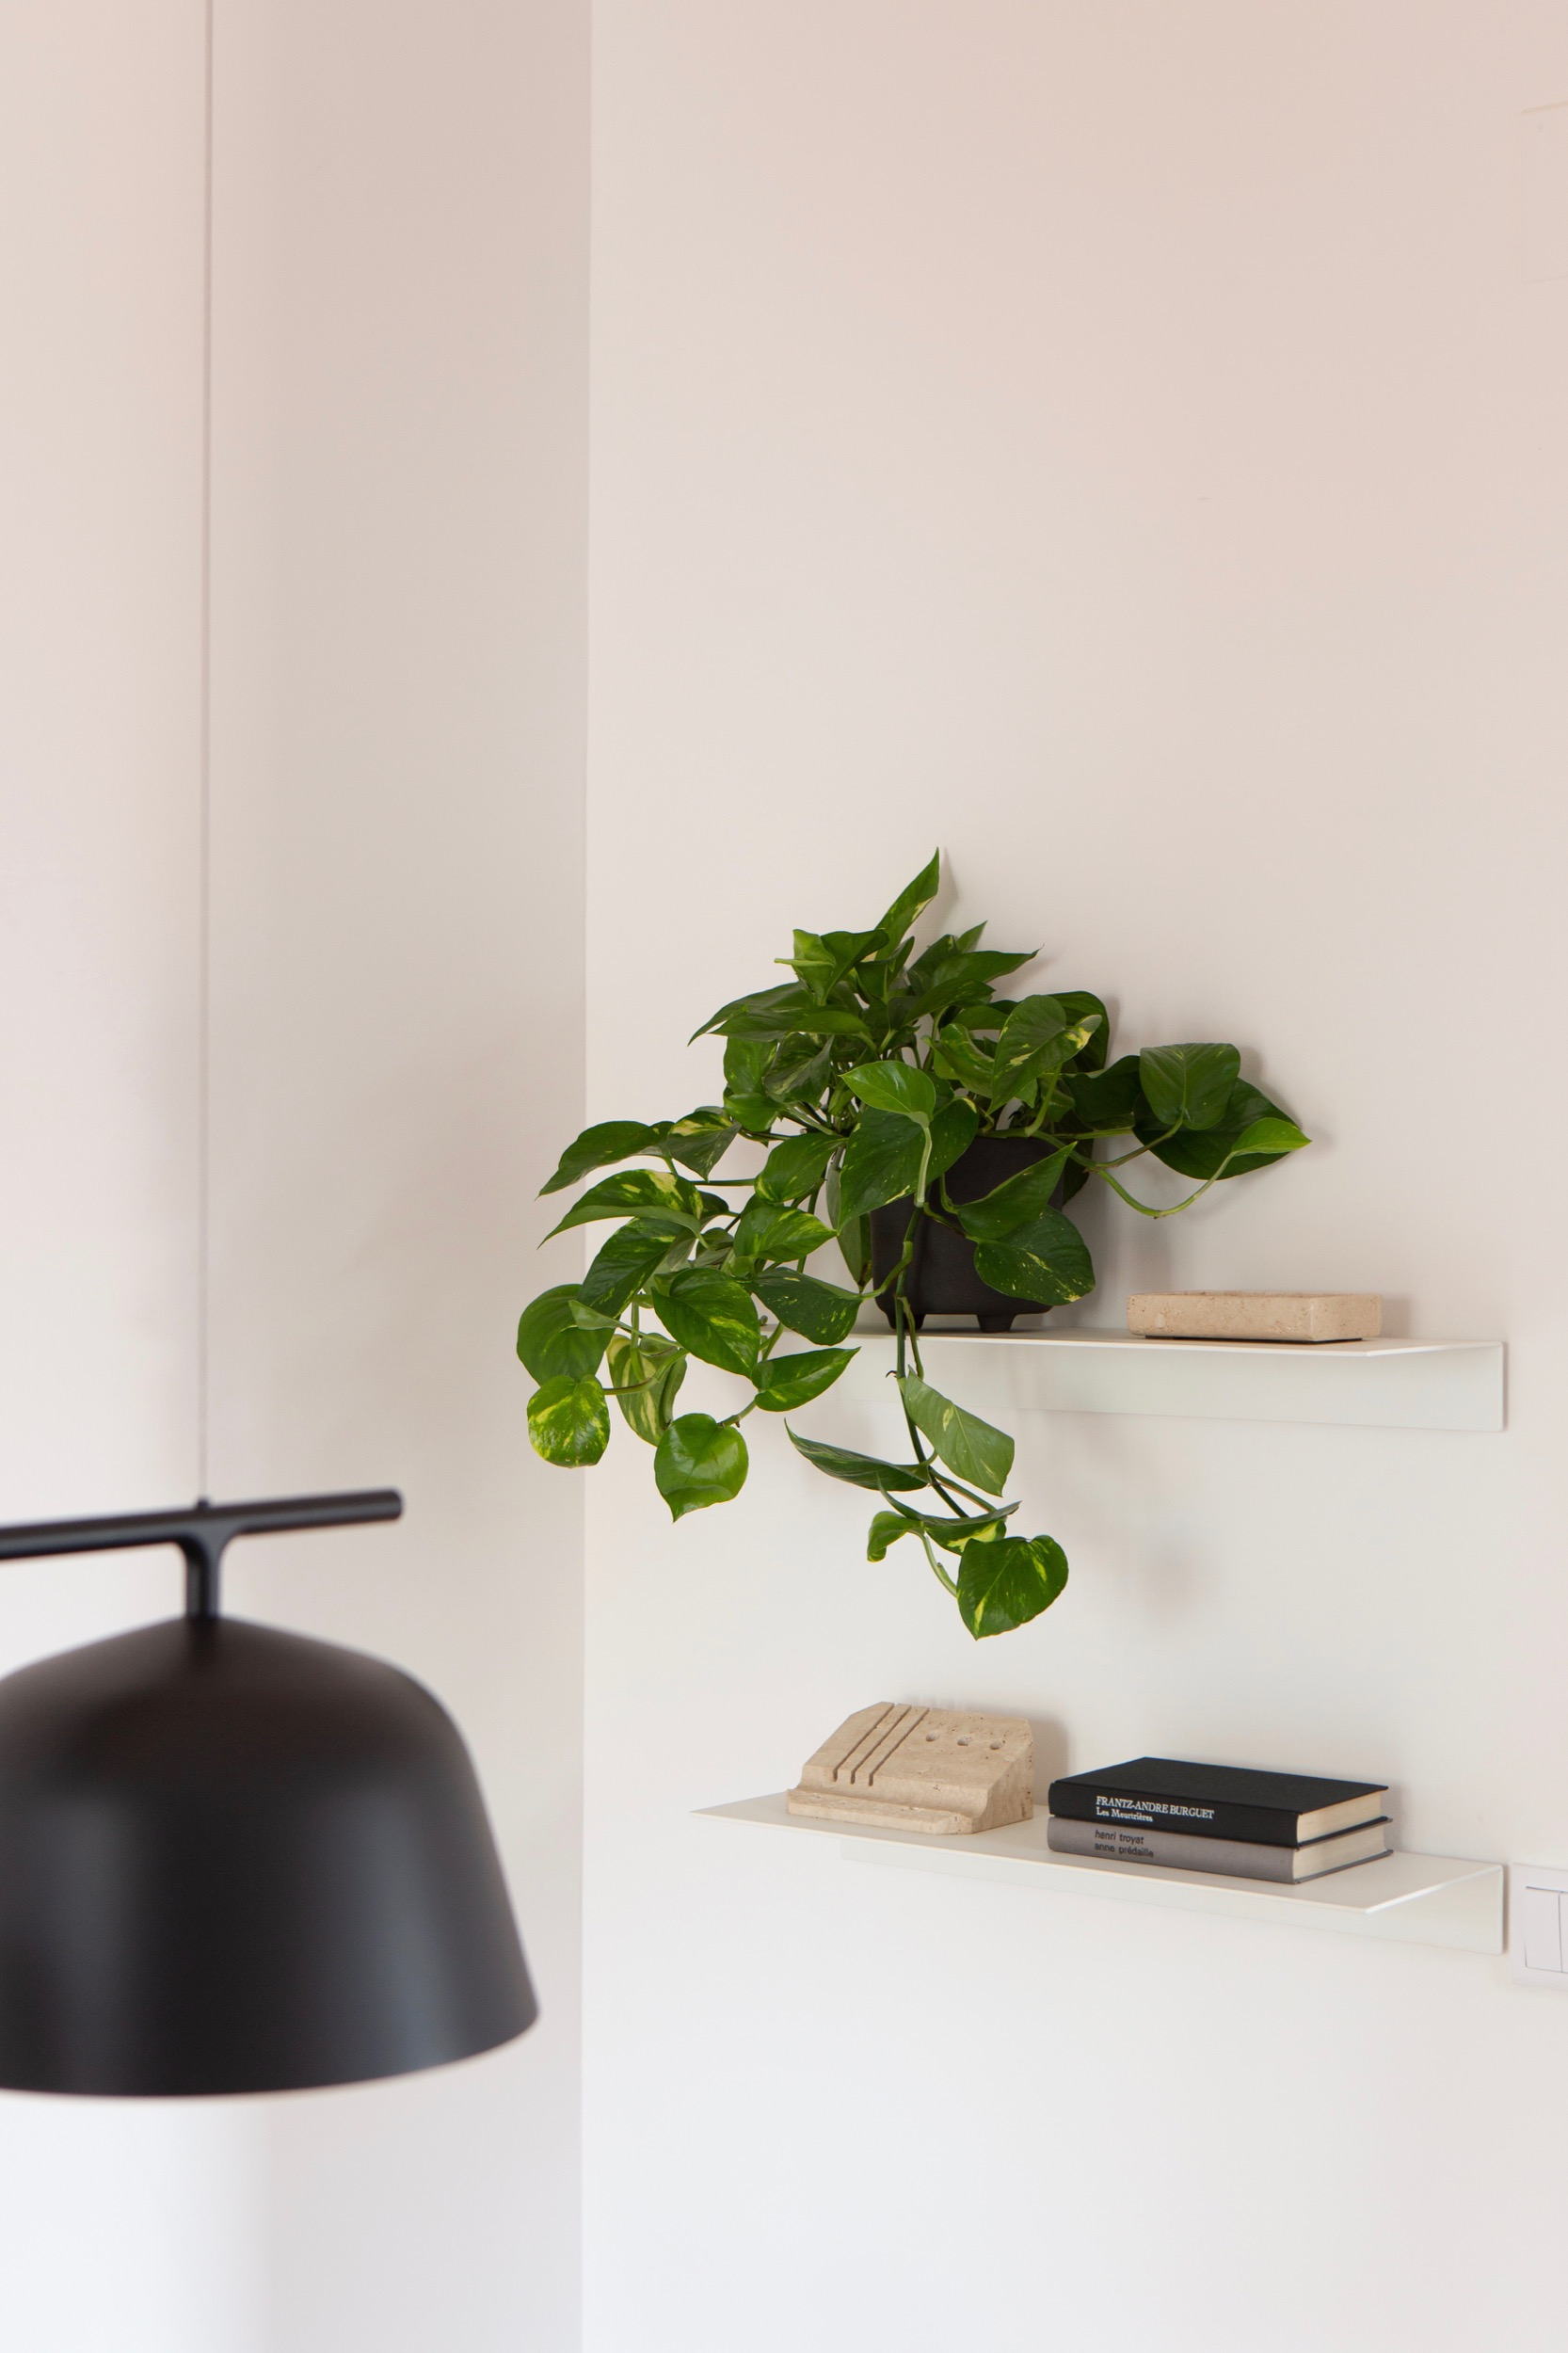 Detail photo of Lola Cwikowski Studio Travessa da Pereira Apartment residential project showing Muuto Ambit Rail lamp, BoConcept Como shelves, and plant.